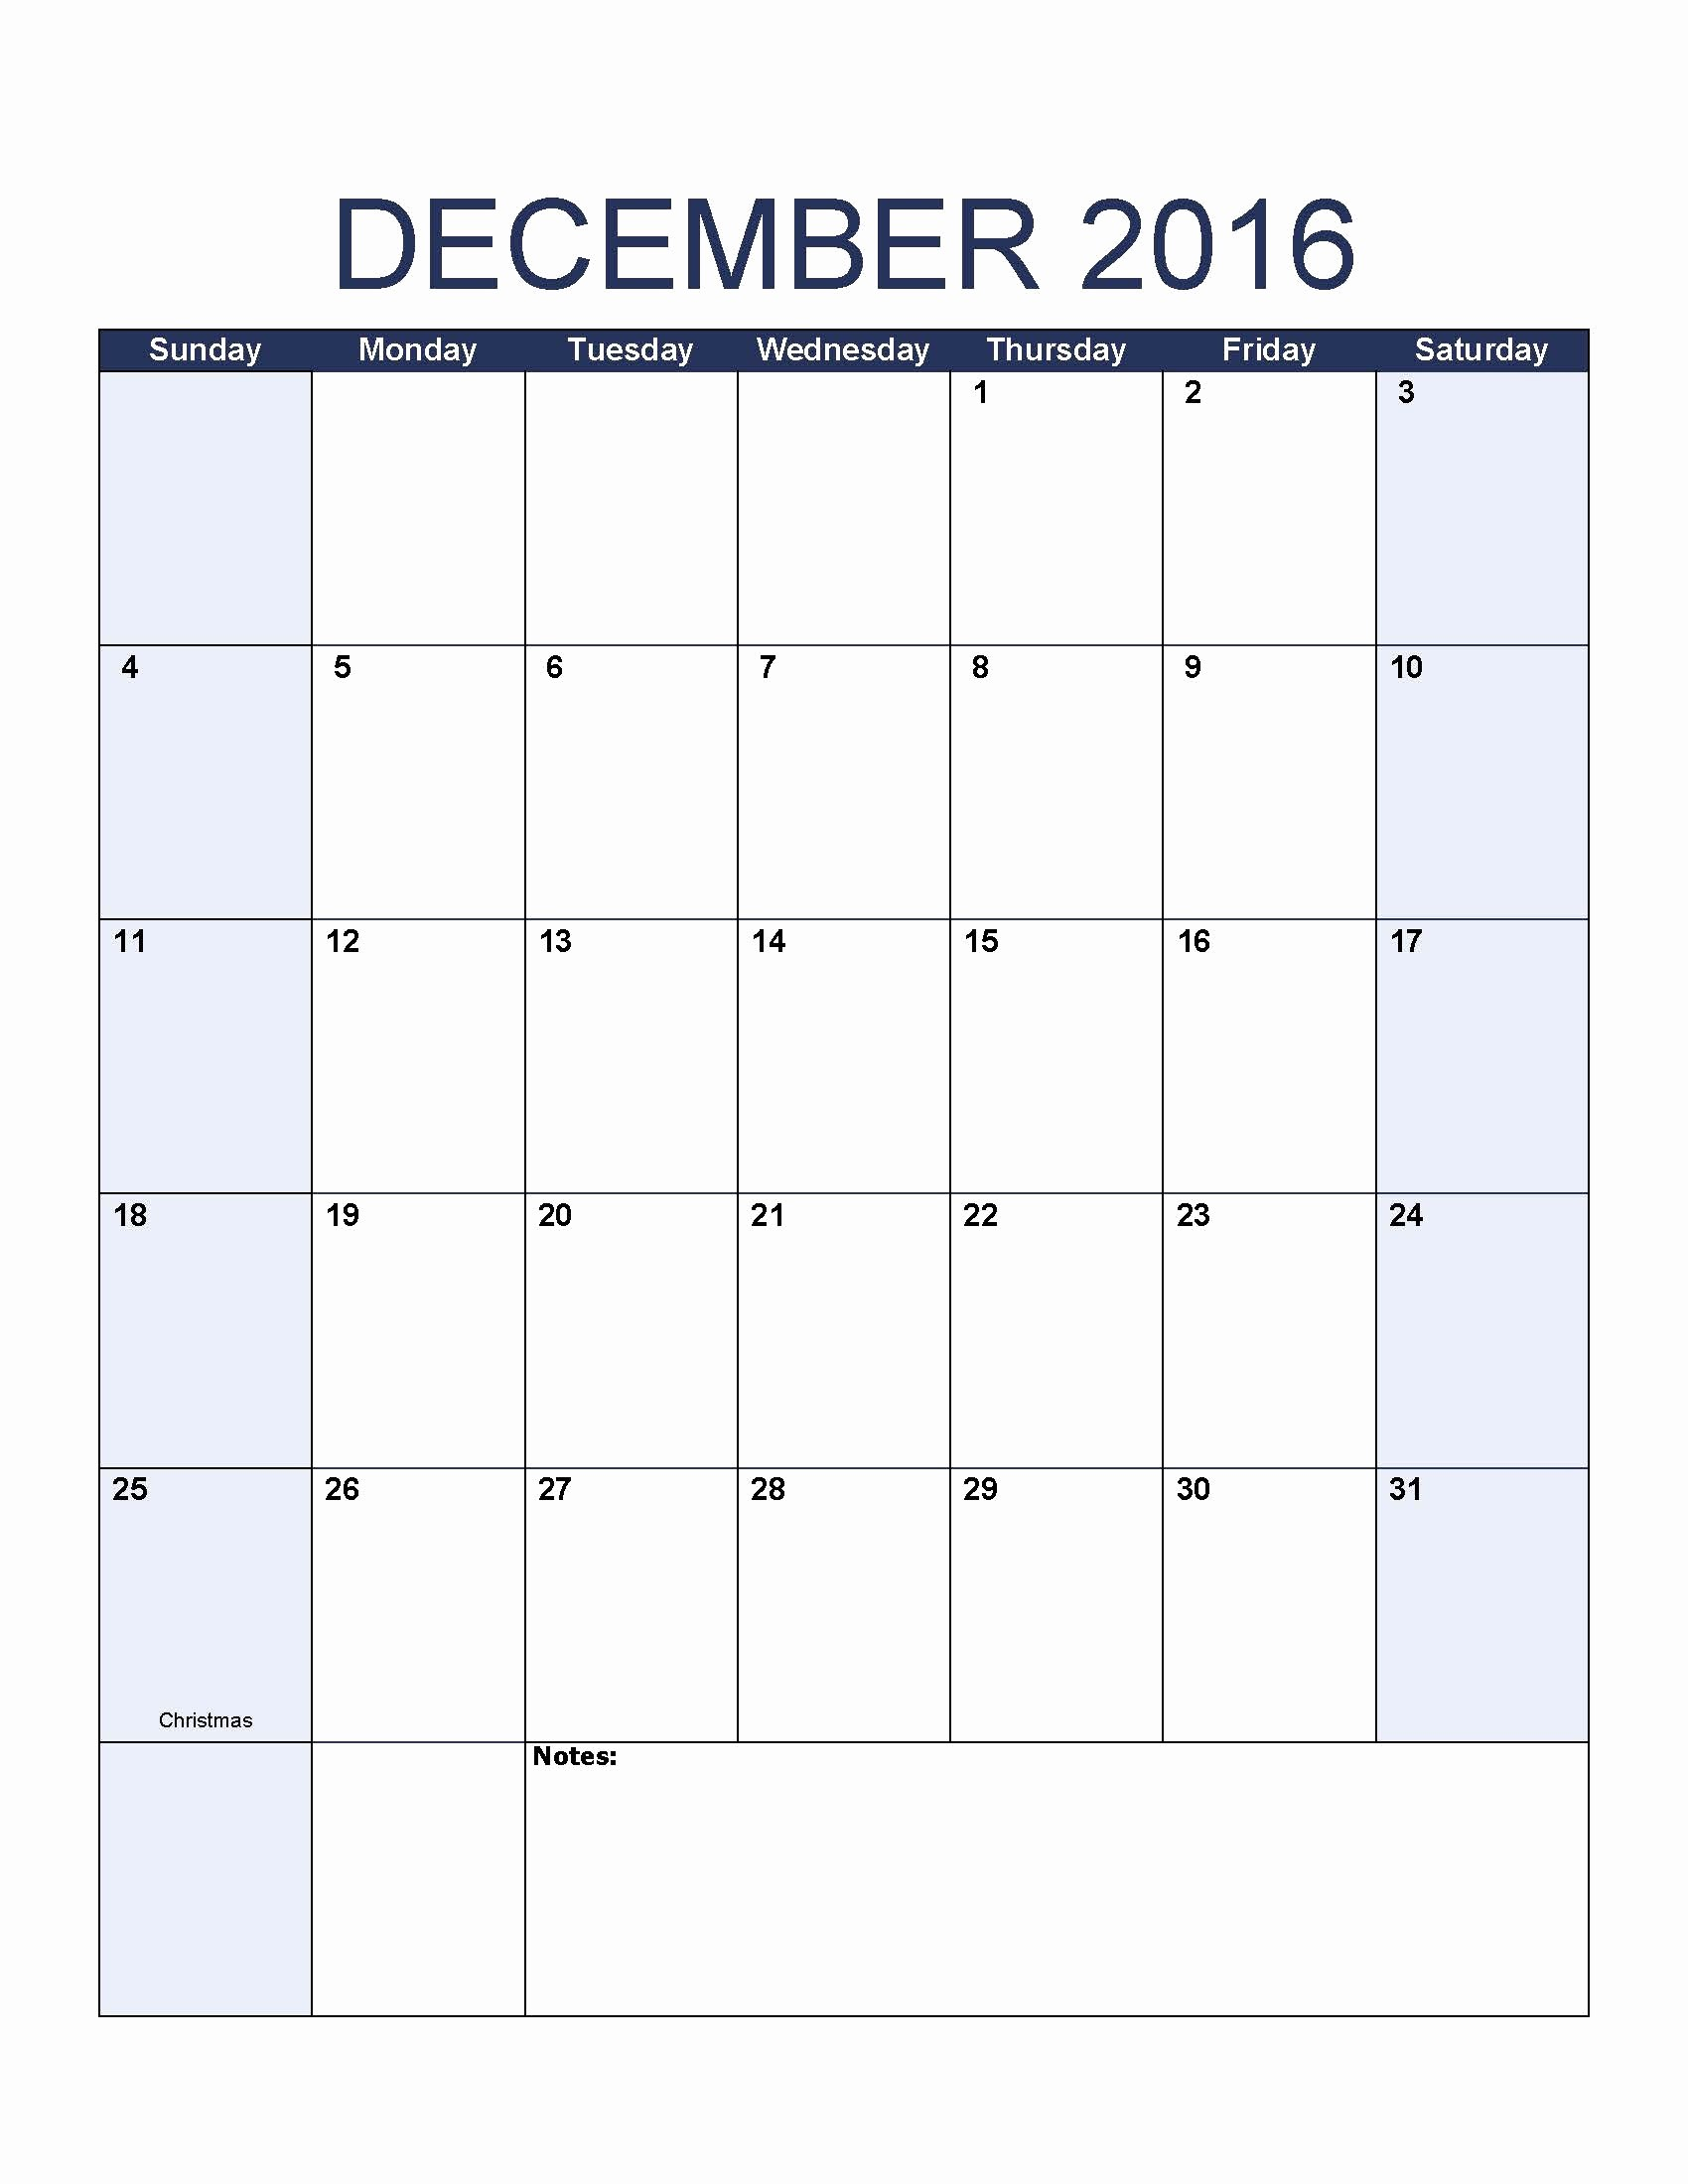 Blank December Calendar 2016 Printable Beautiful Blank December 2016 Calendar to Print